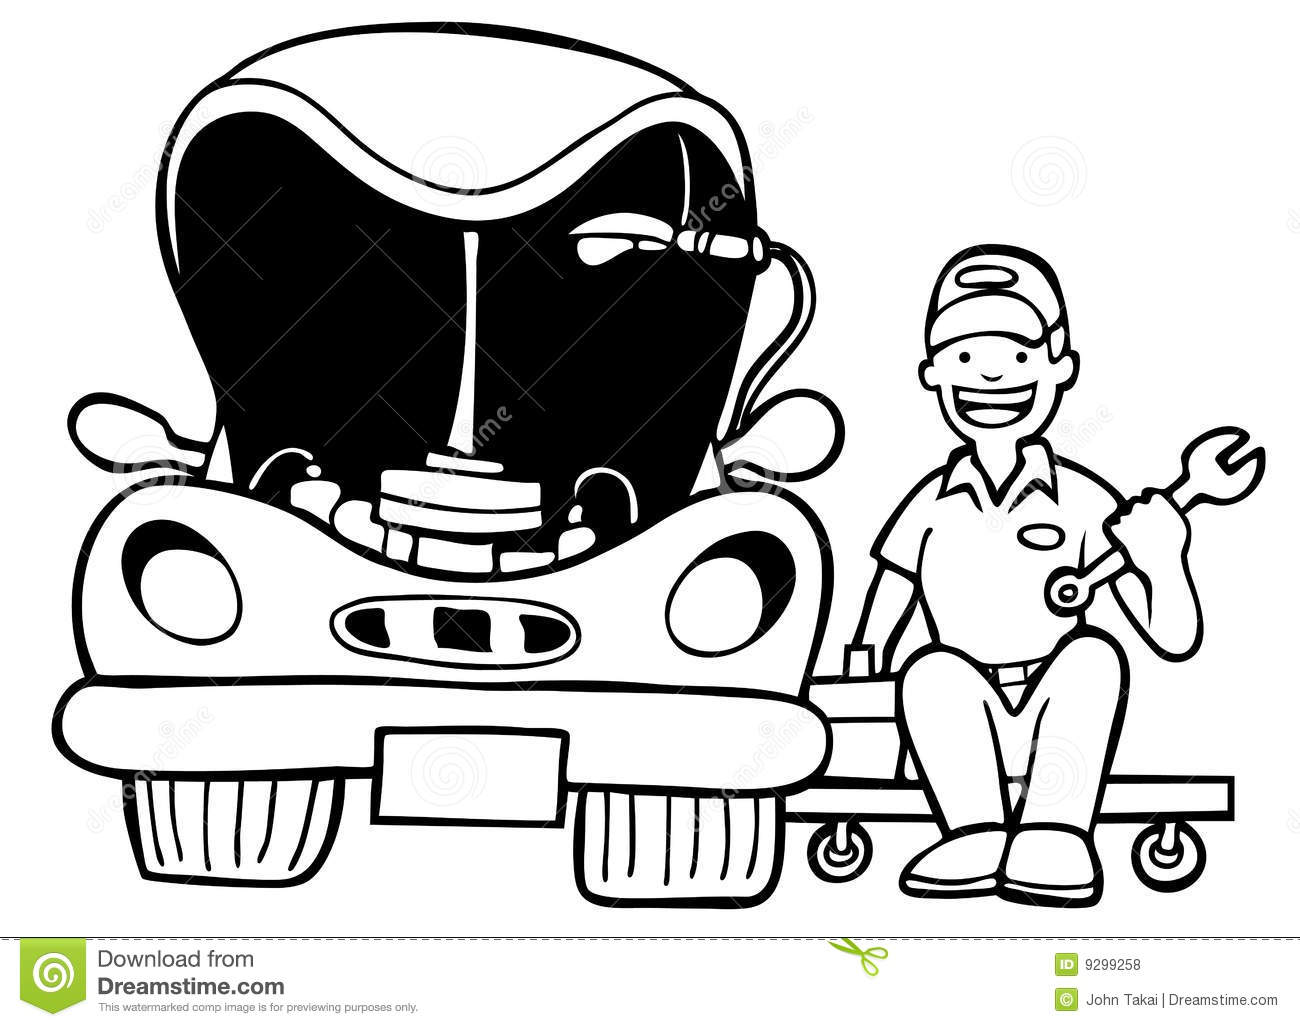 Auto Repair - Black And White Royalty Free Stock Photos - Image ...